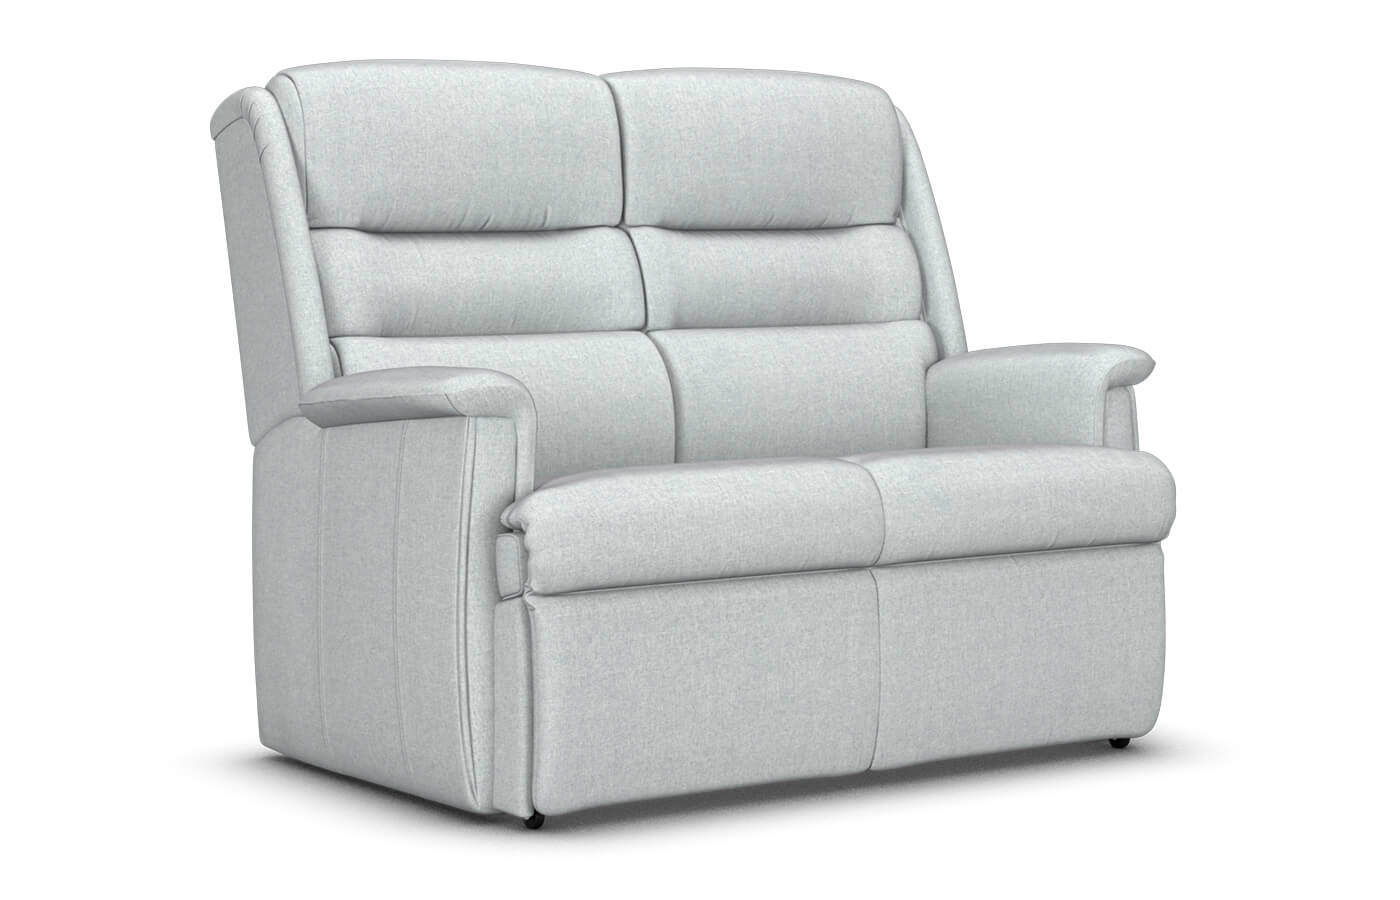 Ripley 2-Seater Power Recliner Sofa Sale